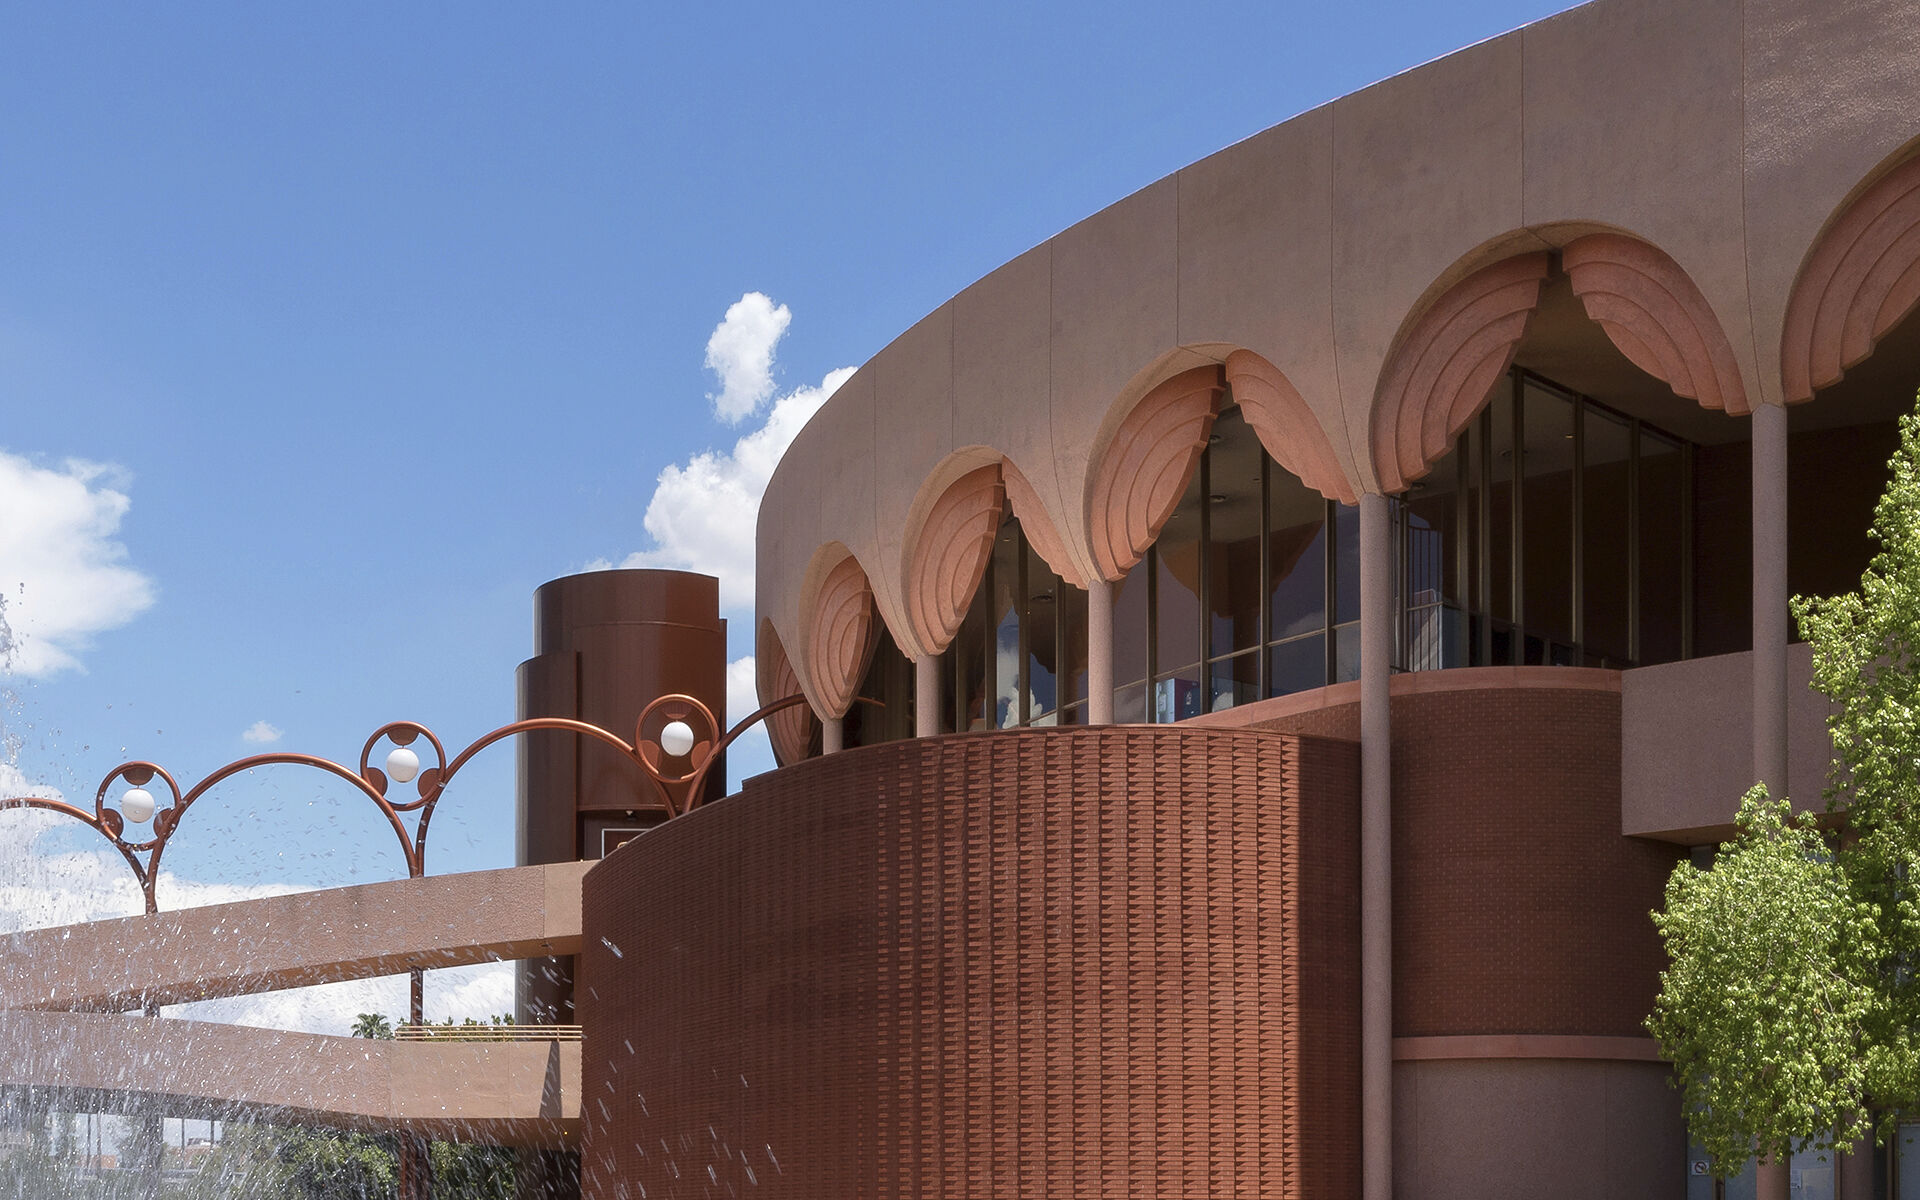 Gammage Auditorium Renovation - Arizona State University